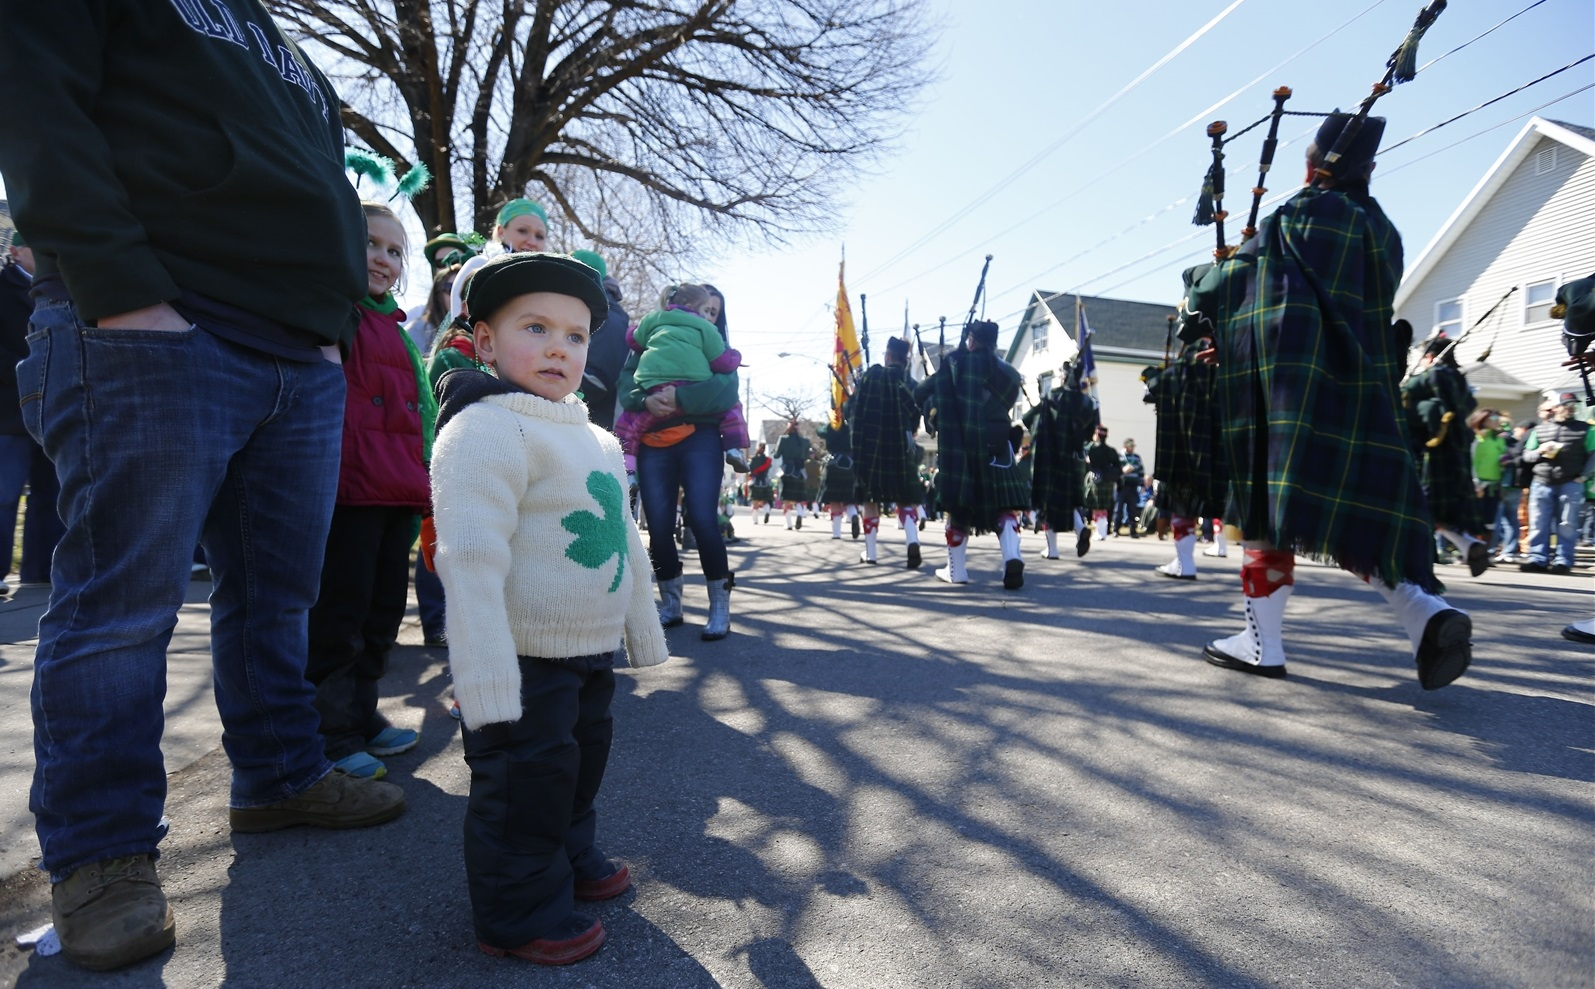 St. Patrick's Day Parade in the Old First Ward welcomes celebrants of all ages. (Mark Mulville/Buffalo News file photo)